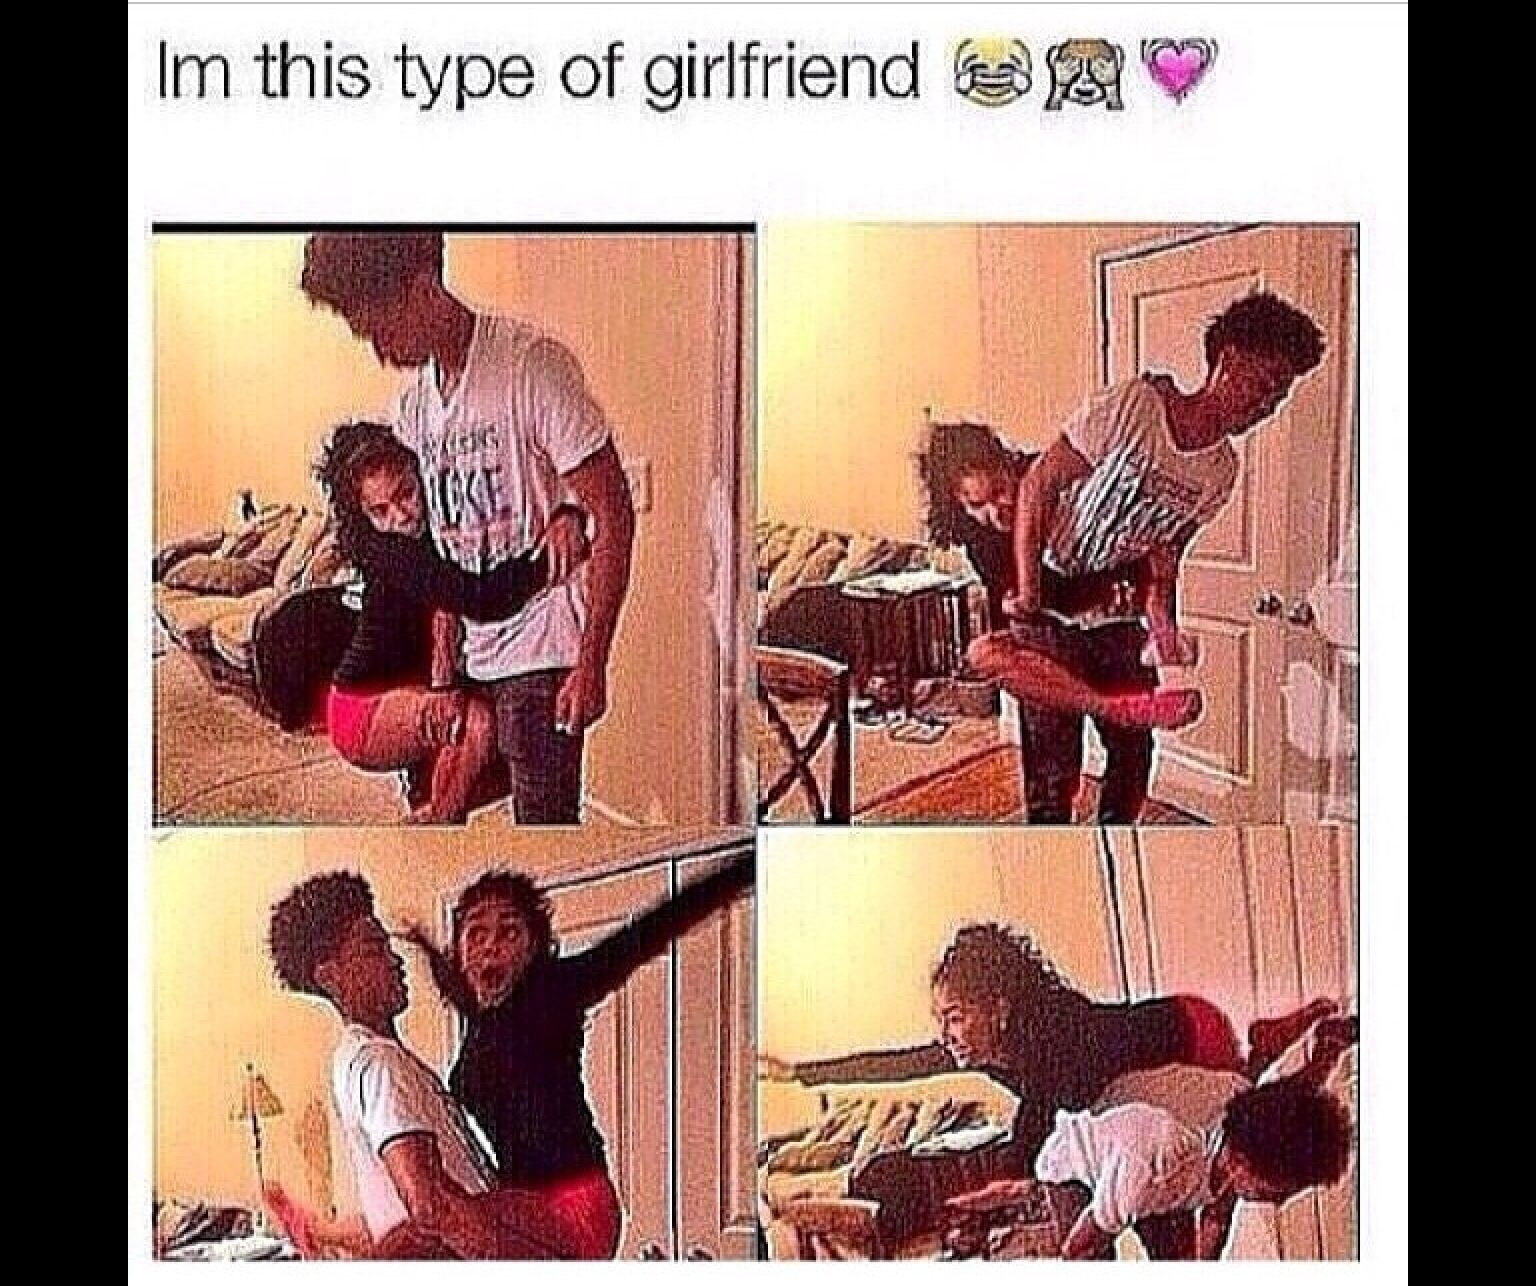 Yeah I M This Type Of Girlfriend Type Of Girlfriend Girlfriend Quotes Relationships Cute Quotes